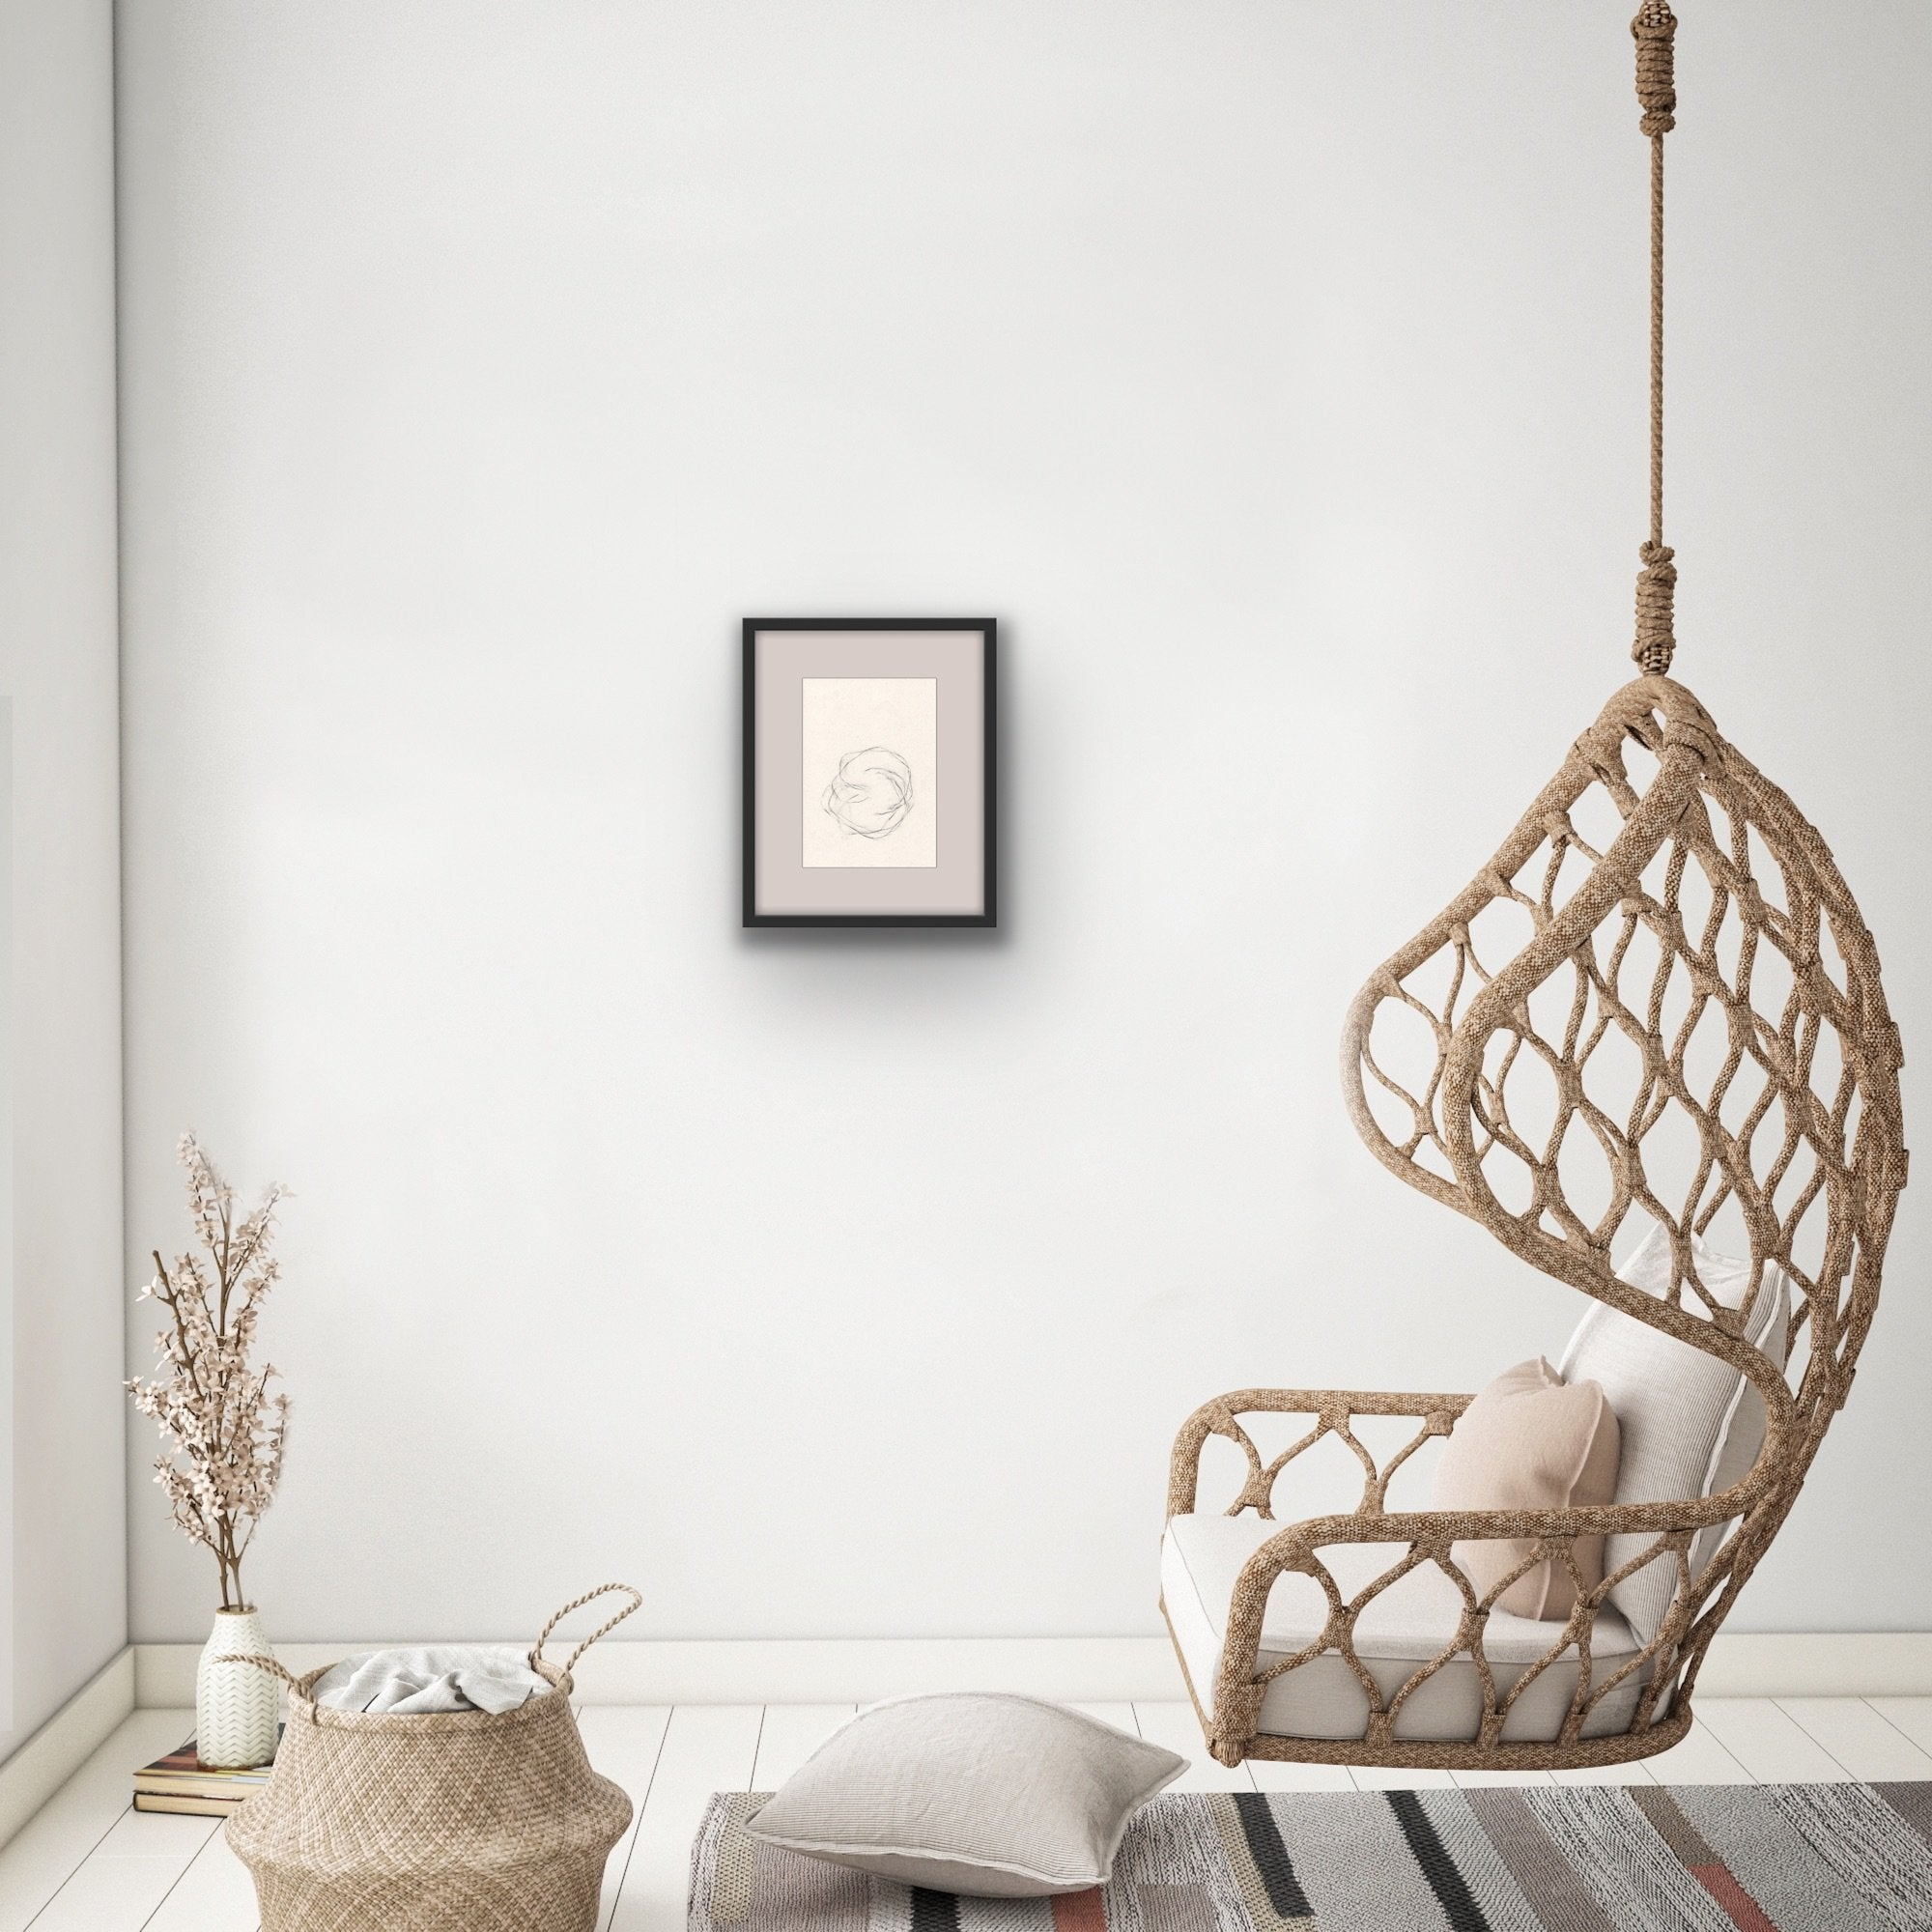 'Unsettled II', a minimalist drawing by contemporary, woman artist, Kayleigh Harris, shown in situ